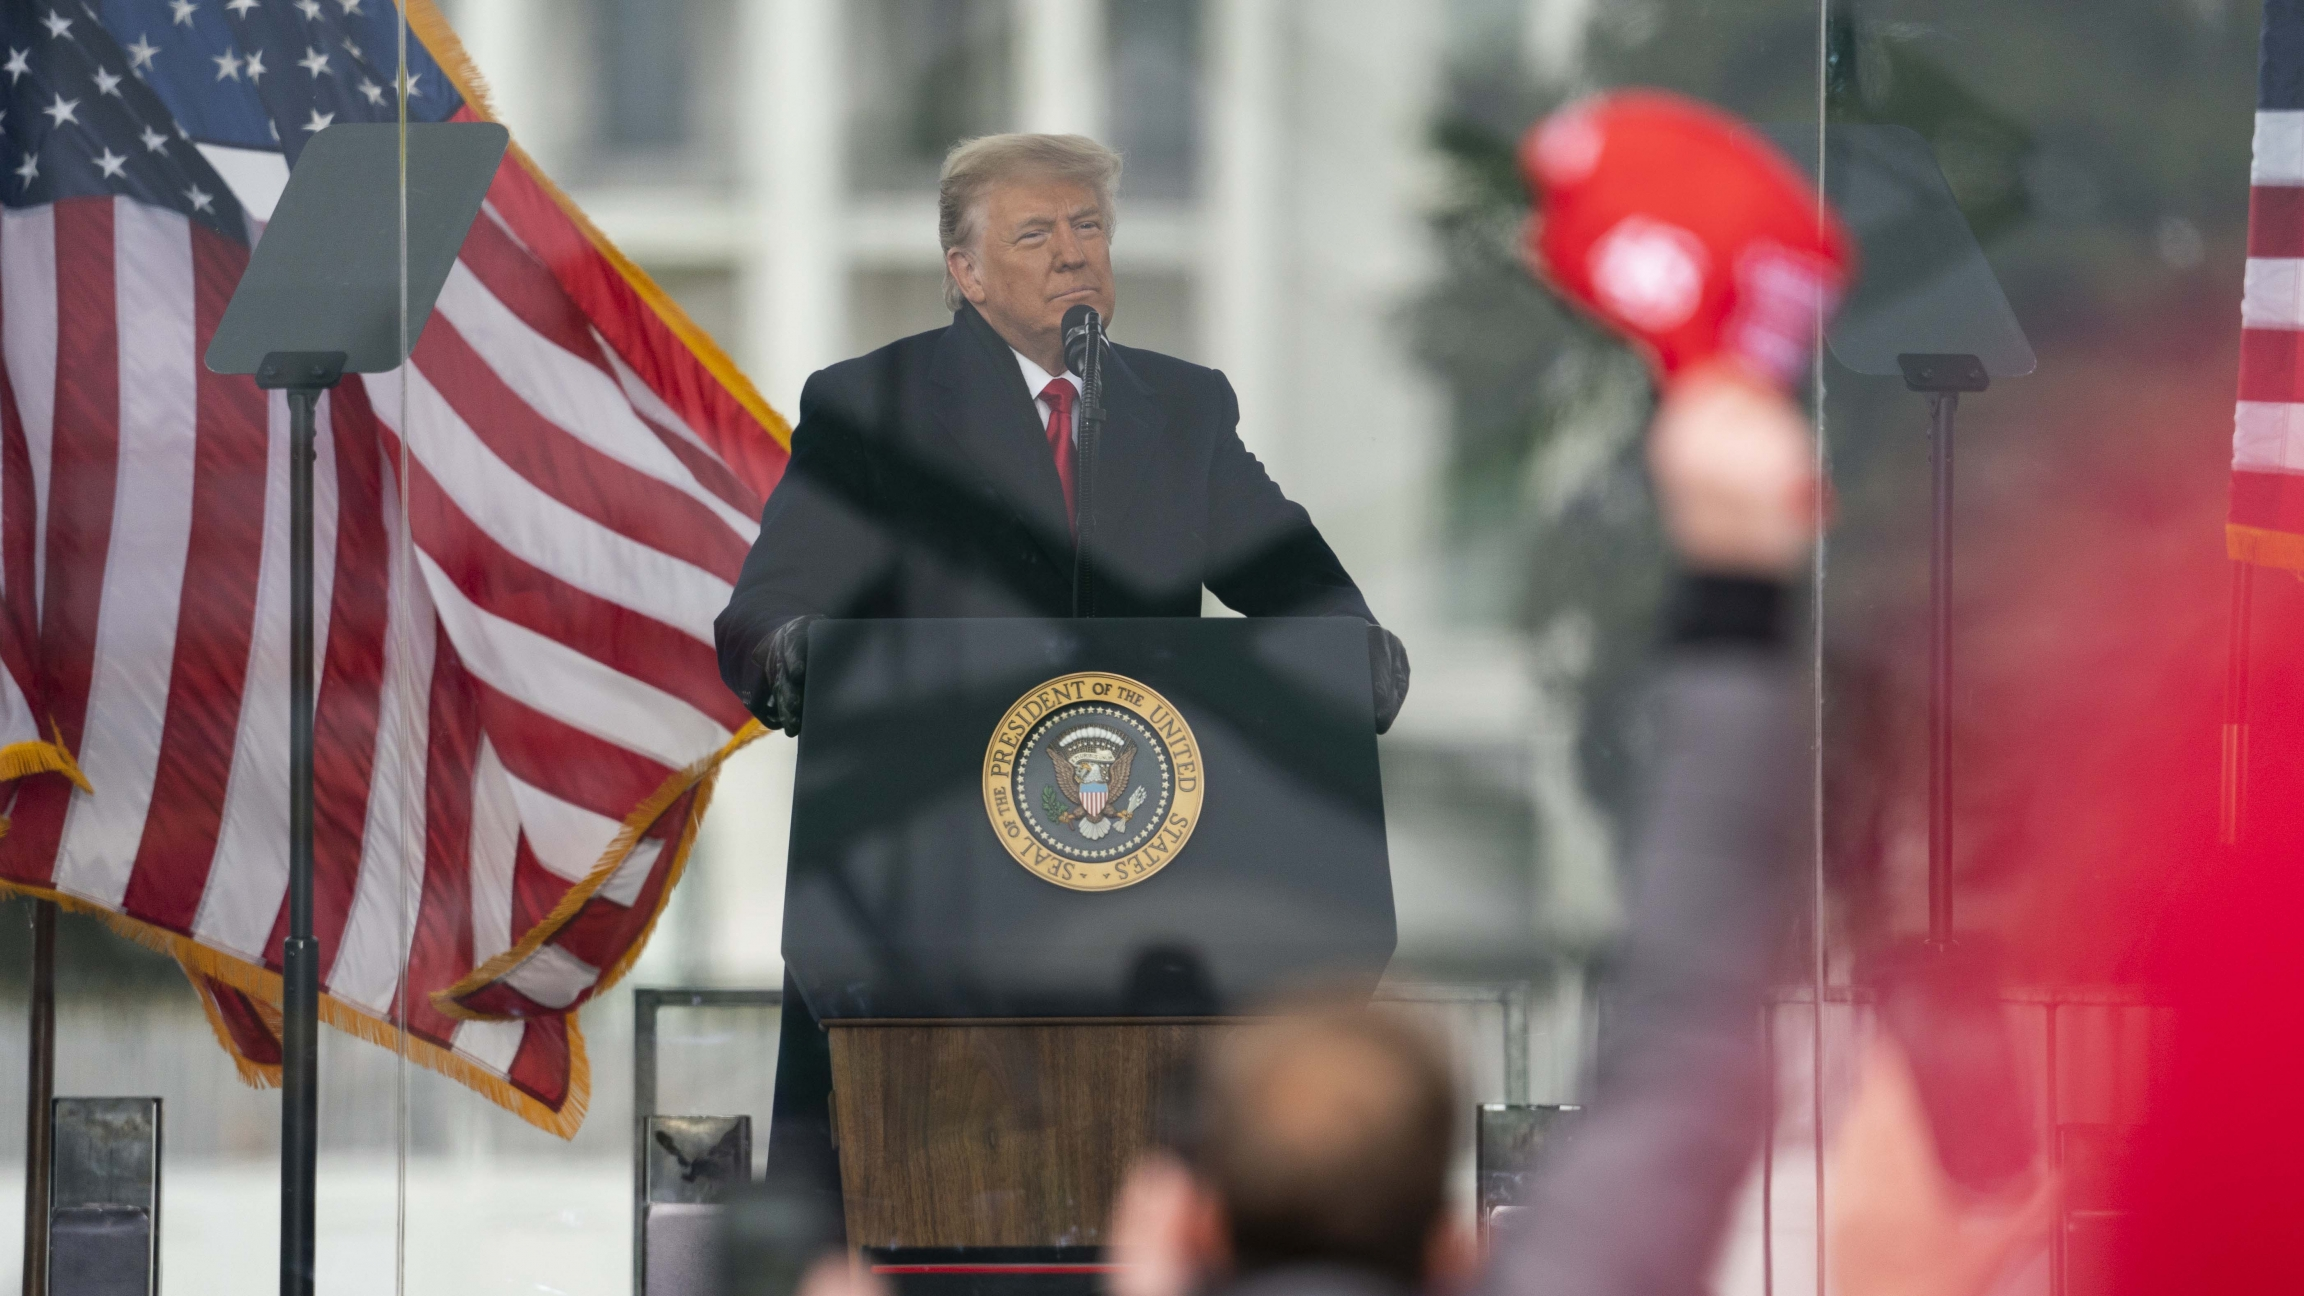 President Donald Trump speaks during a rally protesting the electoral college certification of Joe Biden as President, Jan. 6, 2021, in Washington, DC.